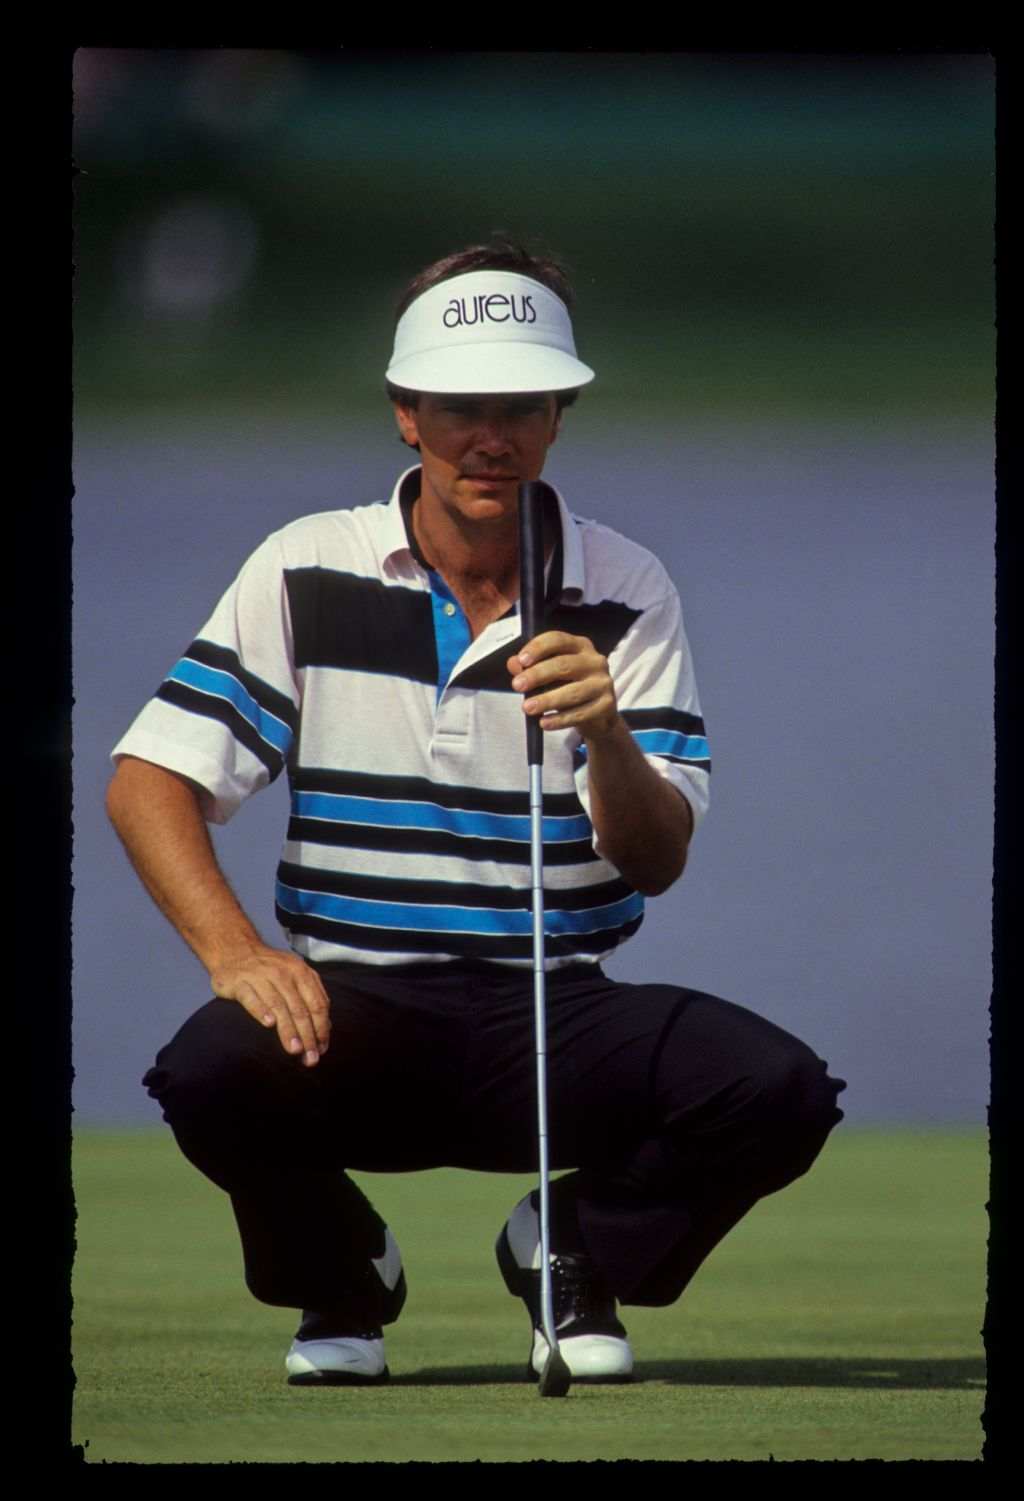 Larry Mize squatting to line up a putt during the 1990 Nestle Invitational